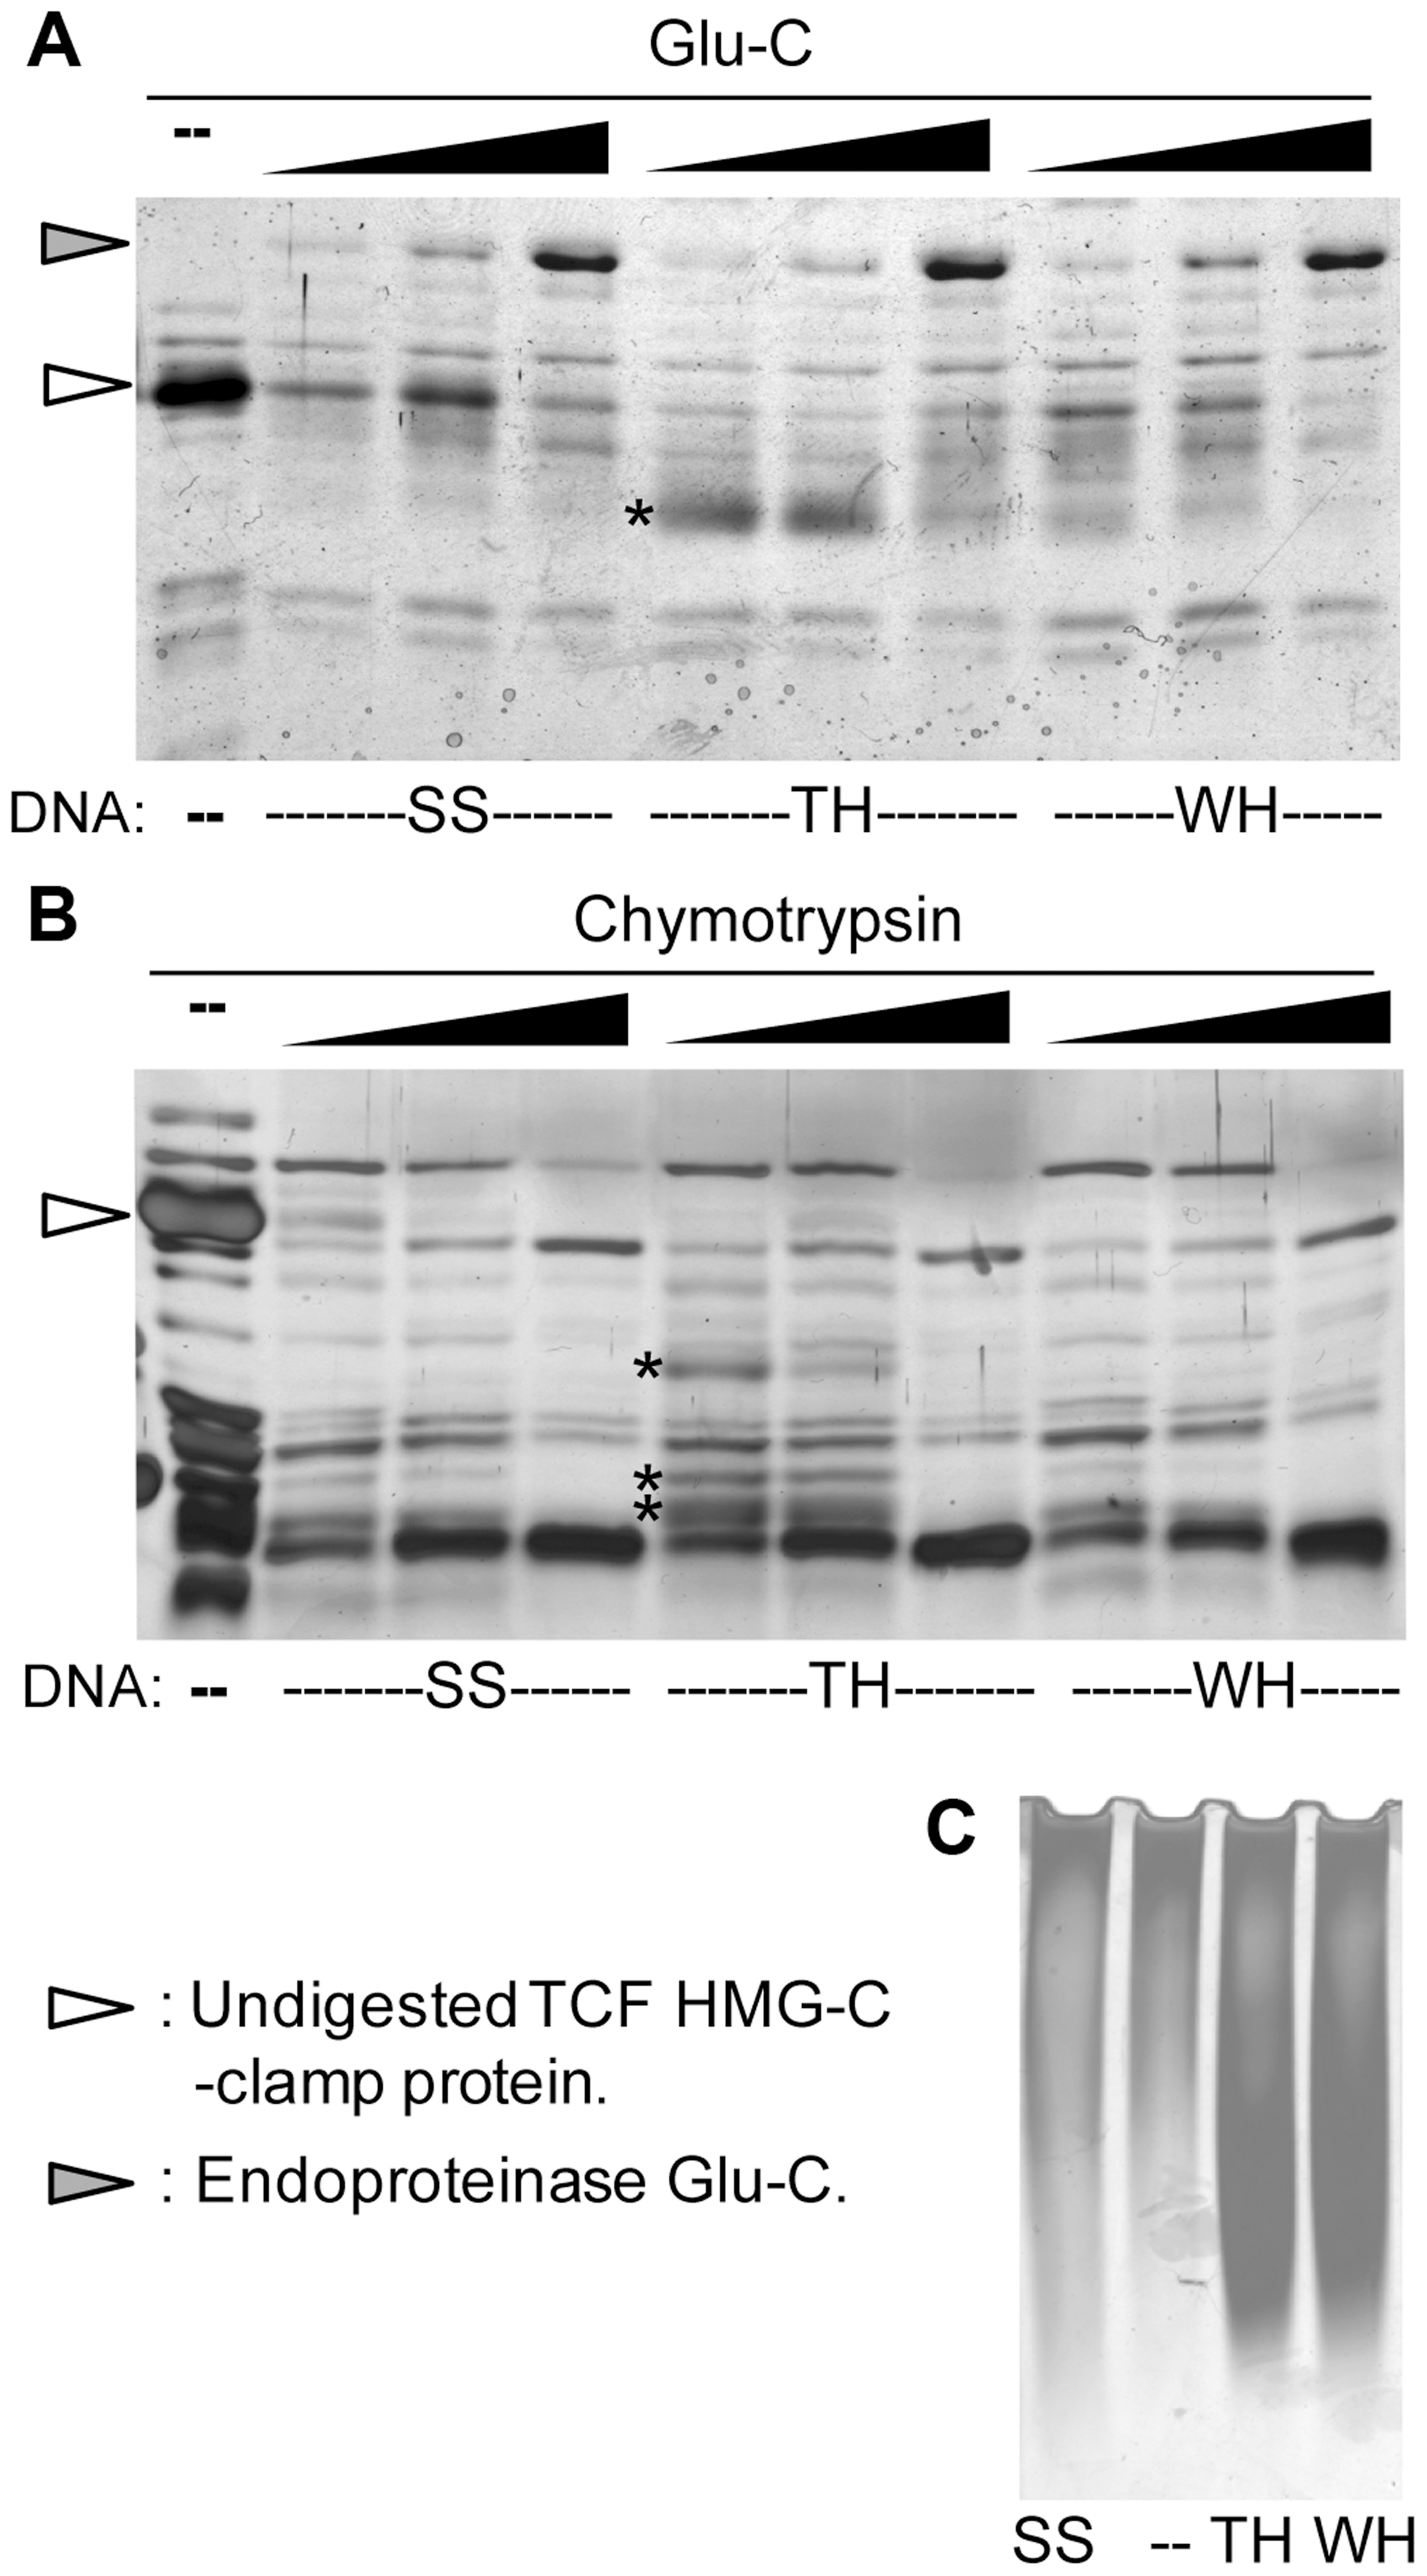 The HMG and C-clamp domains adopt different conformations when bound to distinct binding sites.